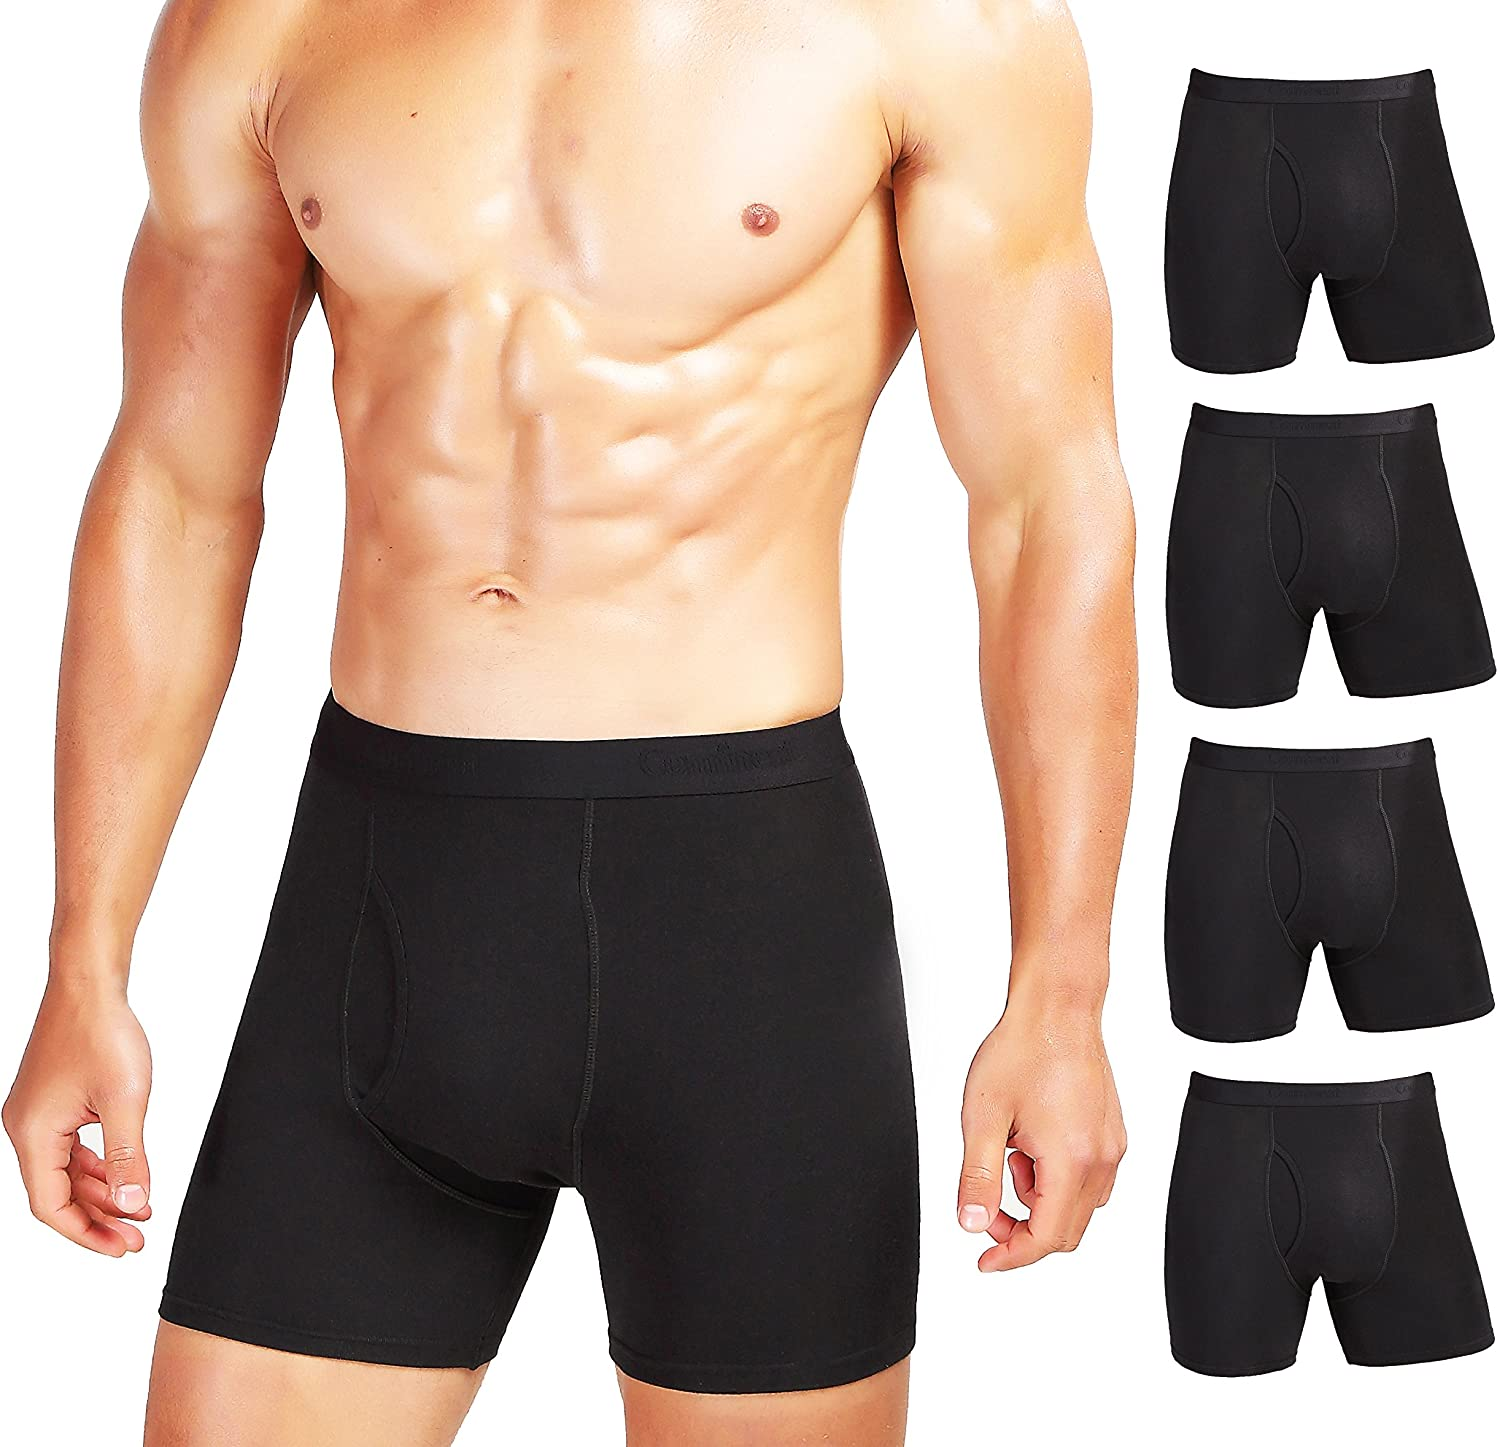 Comfneat Men's 5 or 7-Pack Boxer Briefs Cotton Spandex Tagless Comfy Underwear Soft Stretchy